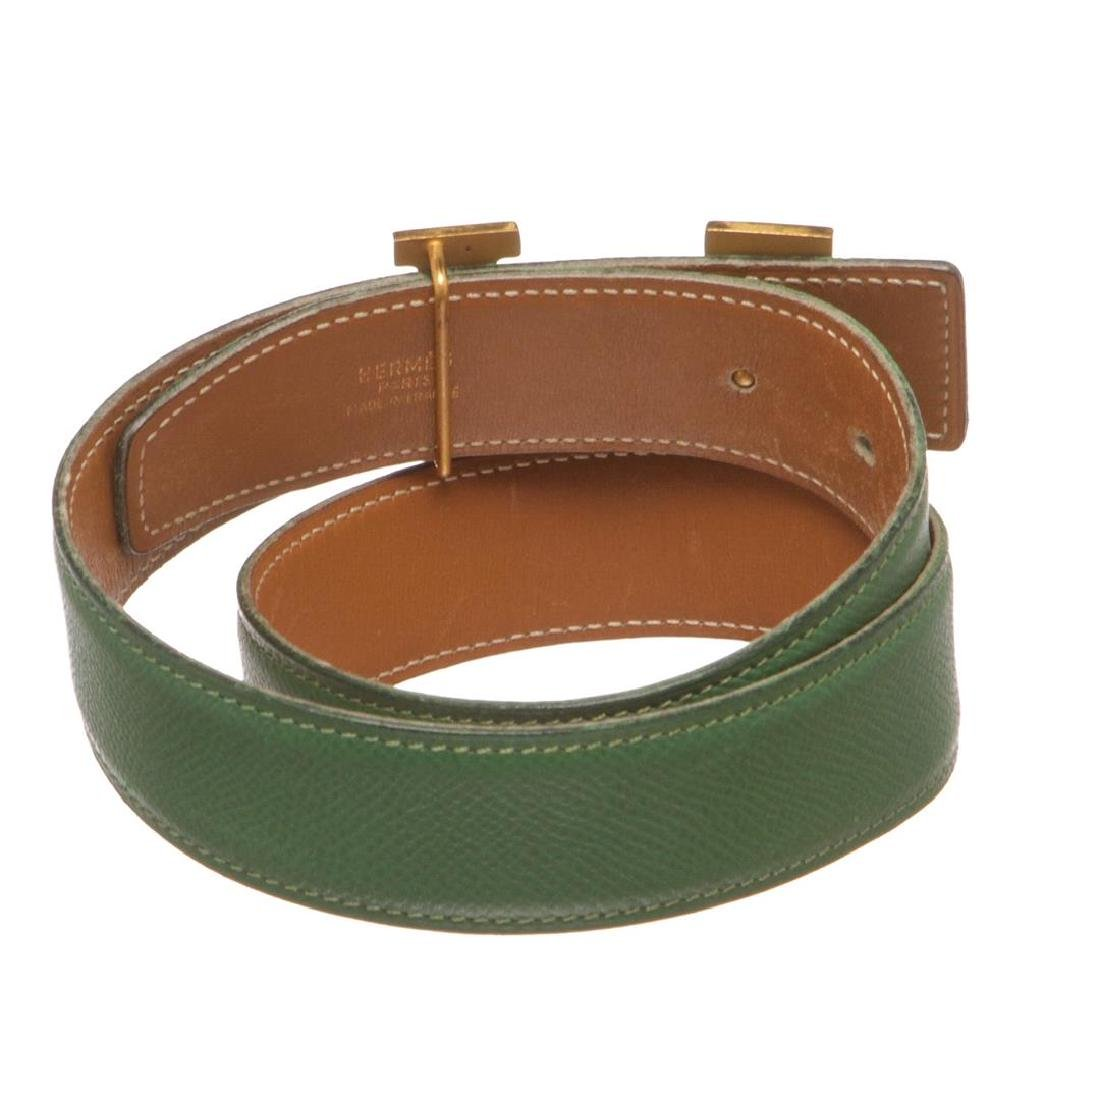 Hermes Green Leather Reversible Constance H Belt 60 - 5